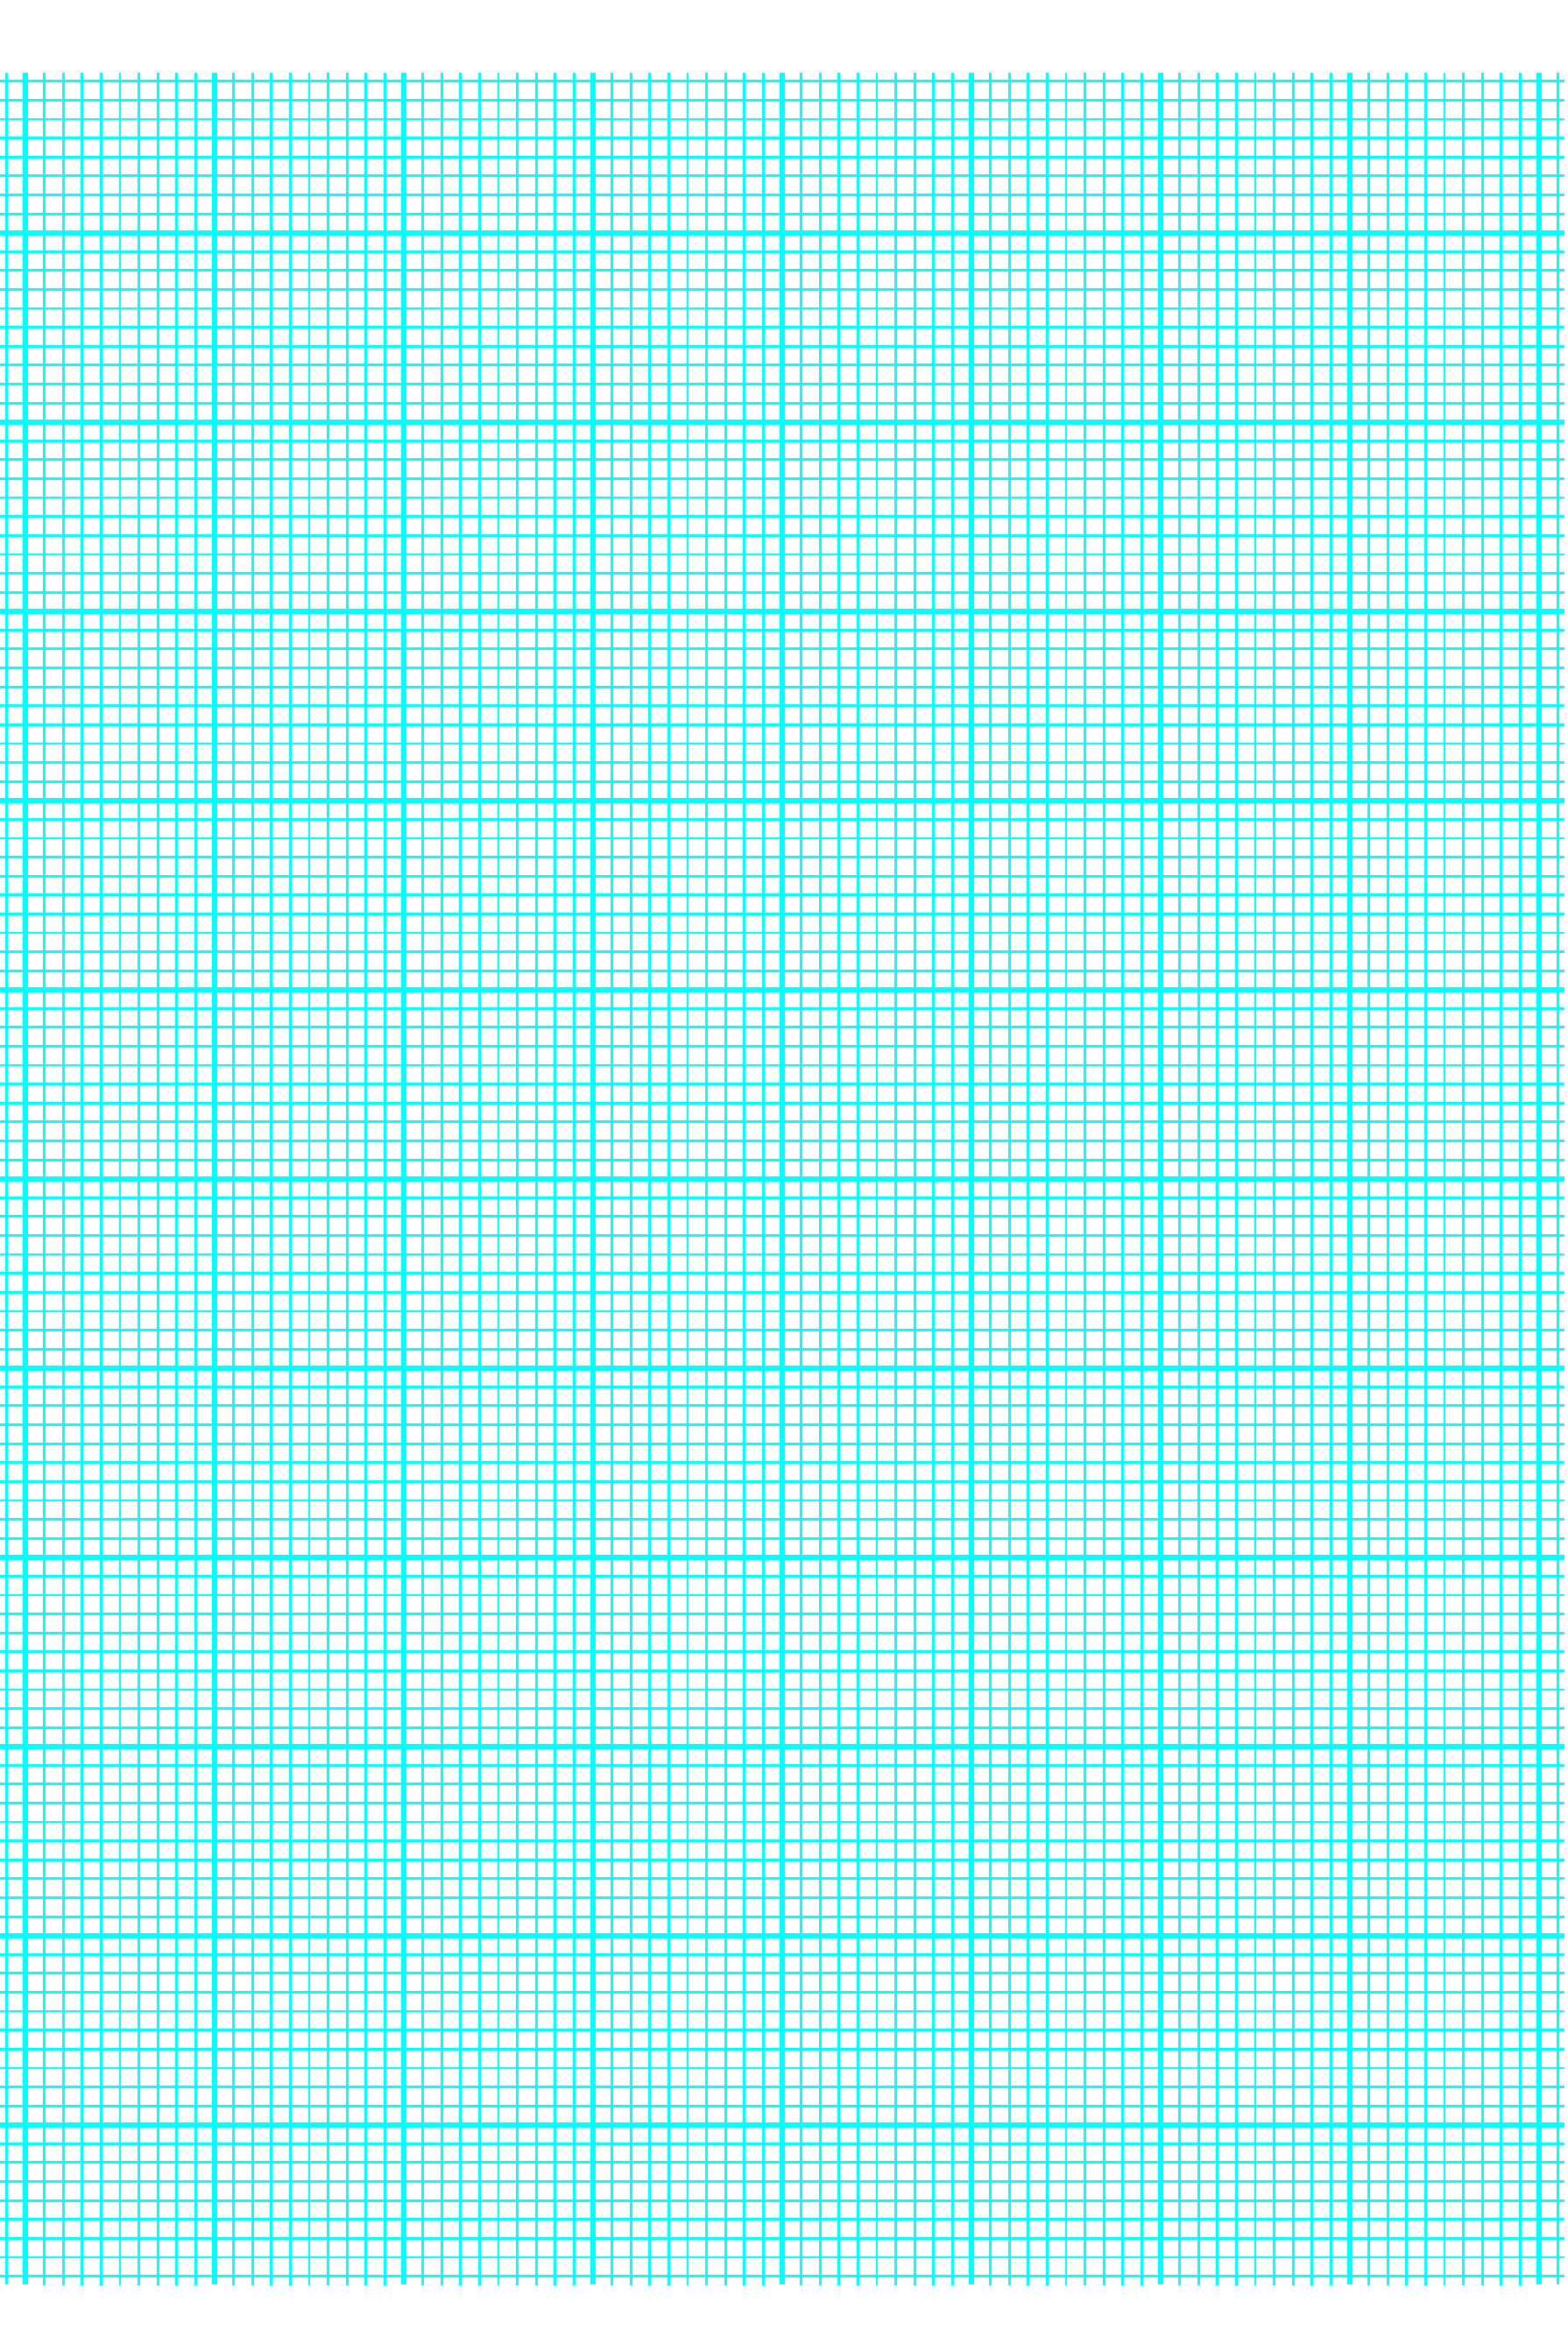 10 lines per inch graph paper on a4